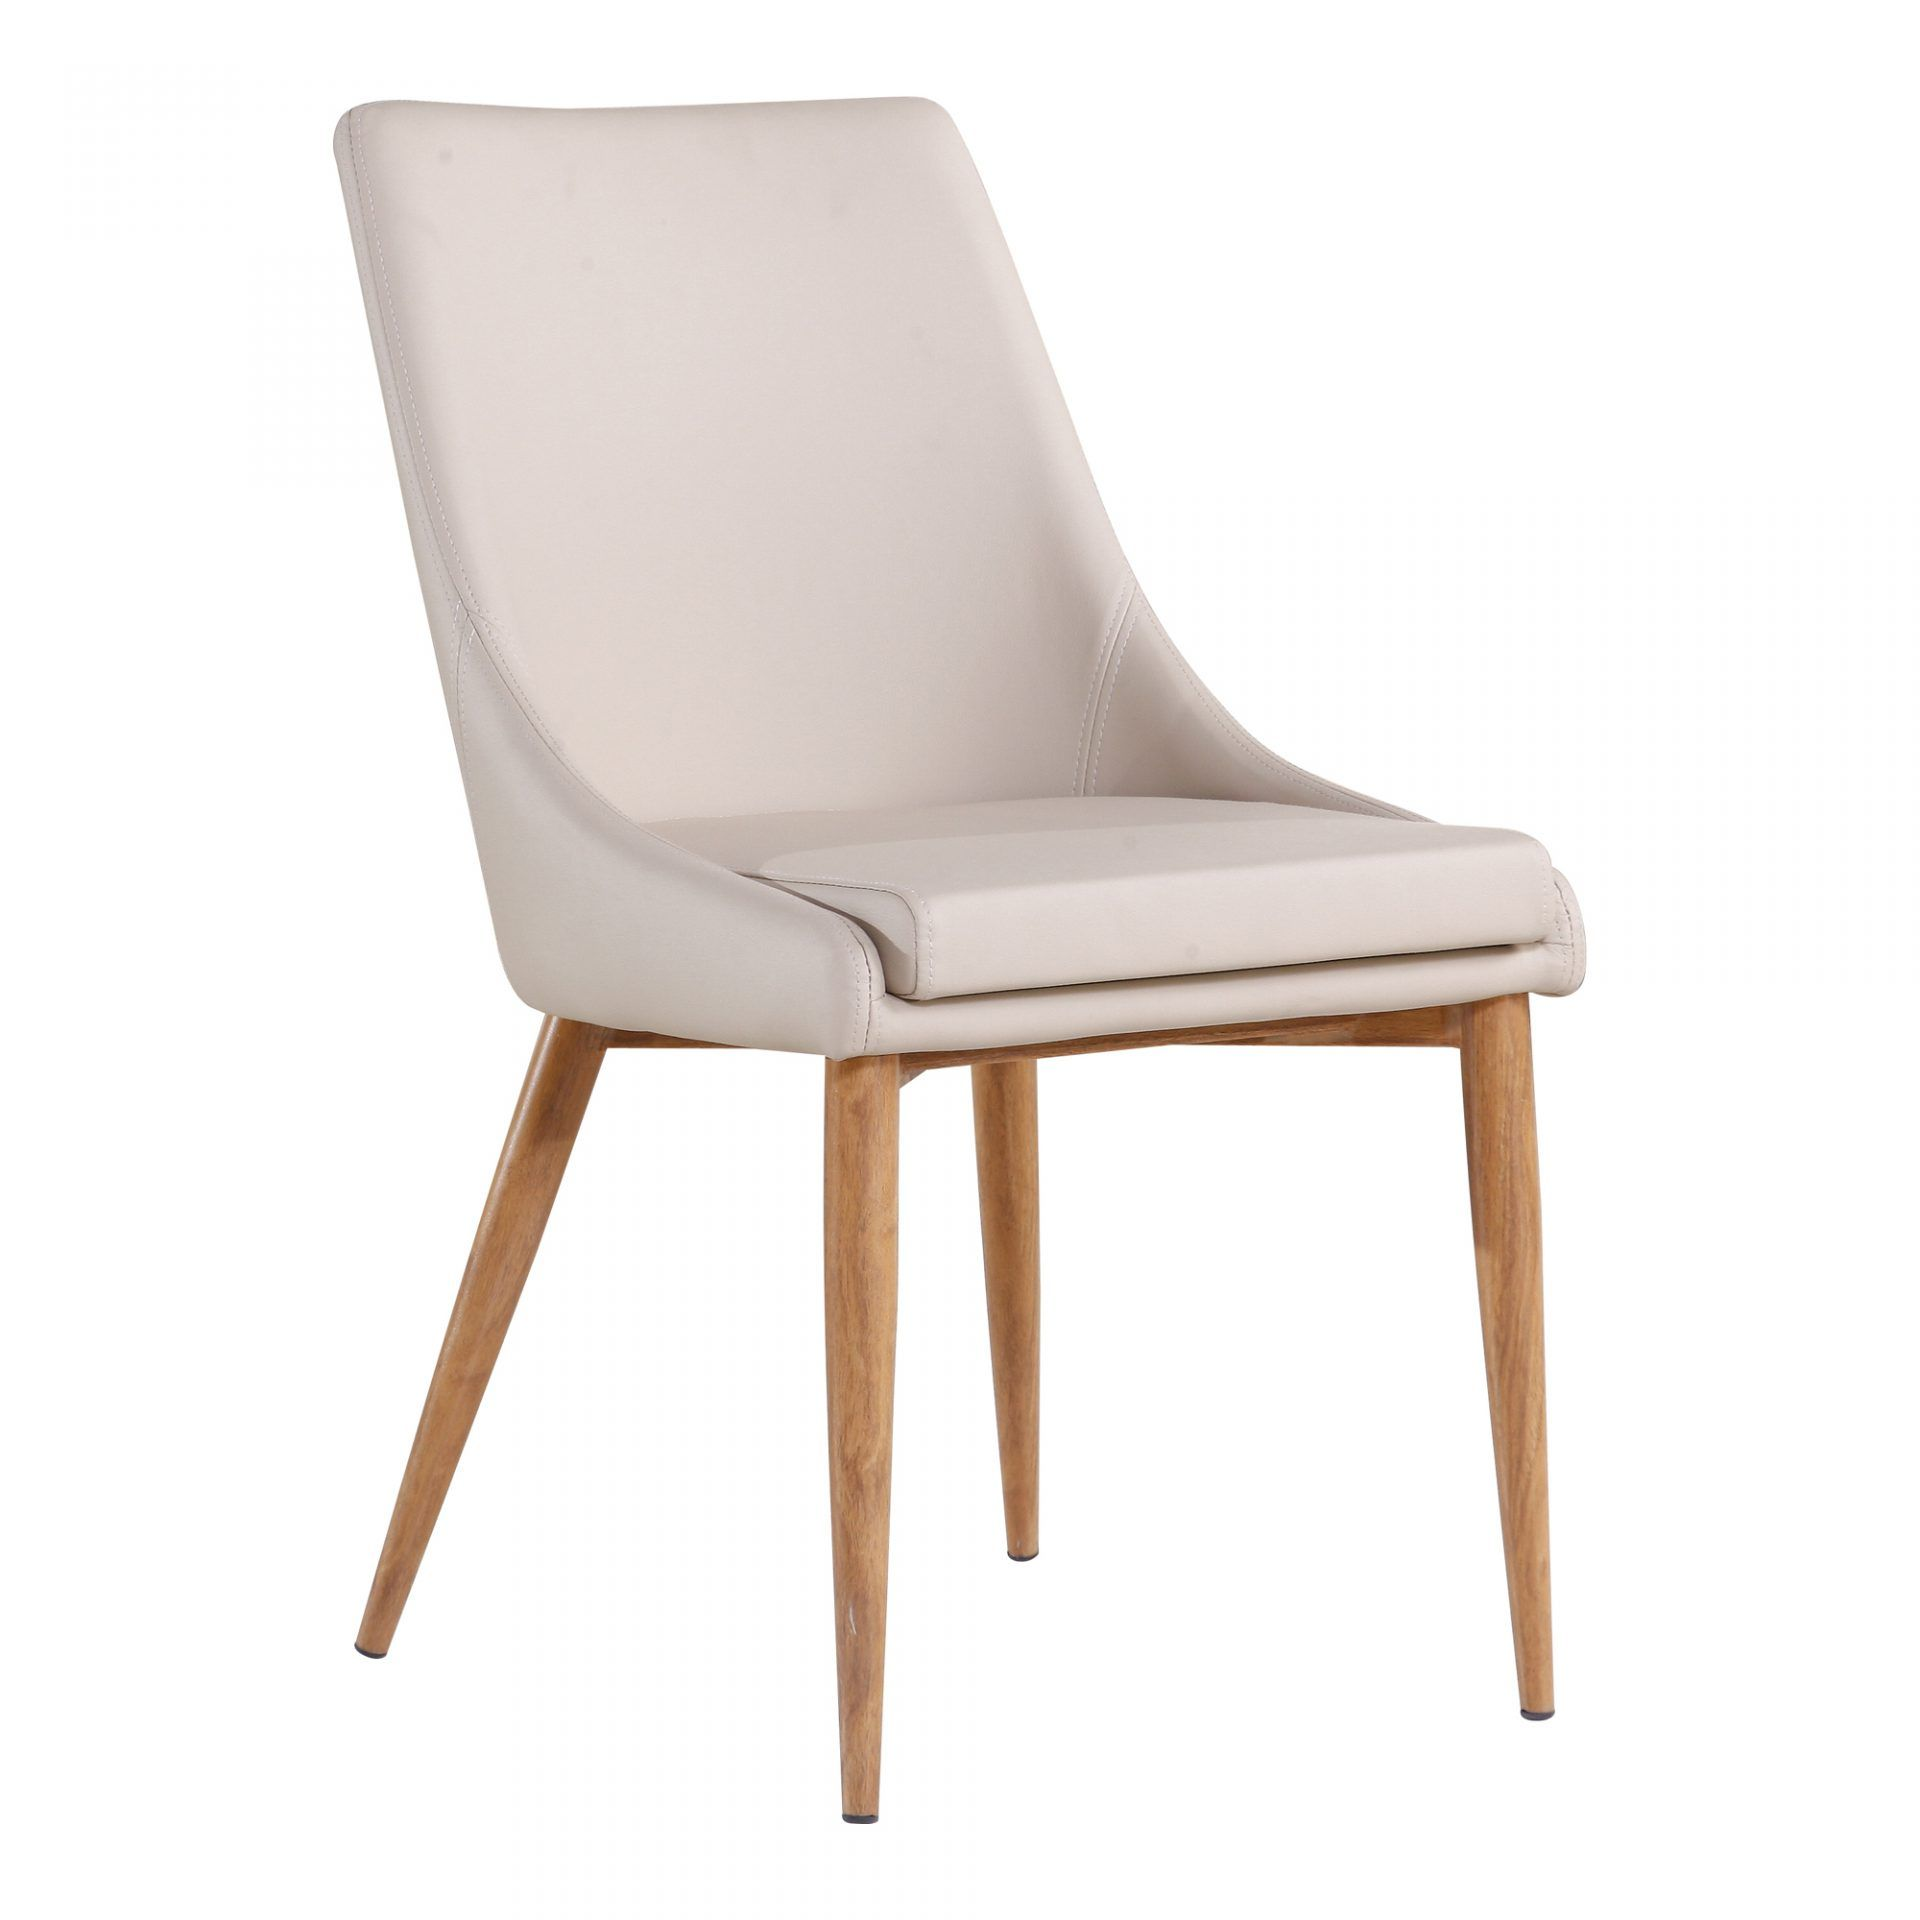 Morello Dining Chair Beige M2 Dining Chairs Moe S Wholesale Dining Chairs World Market Dining Chairs Modern Dining Chairs